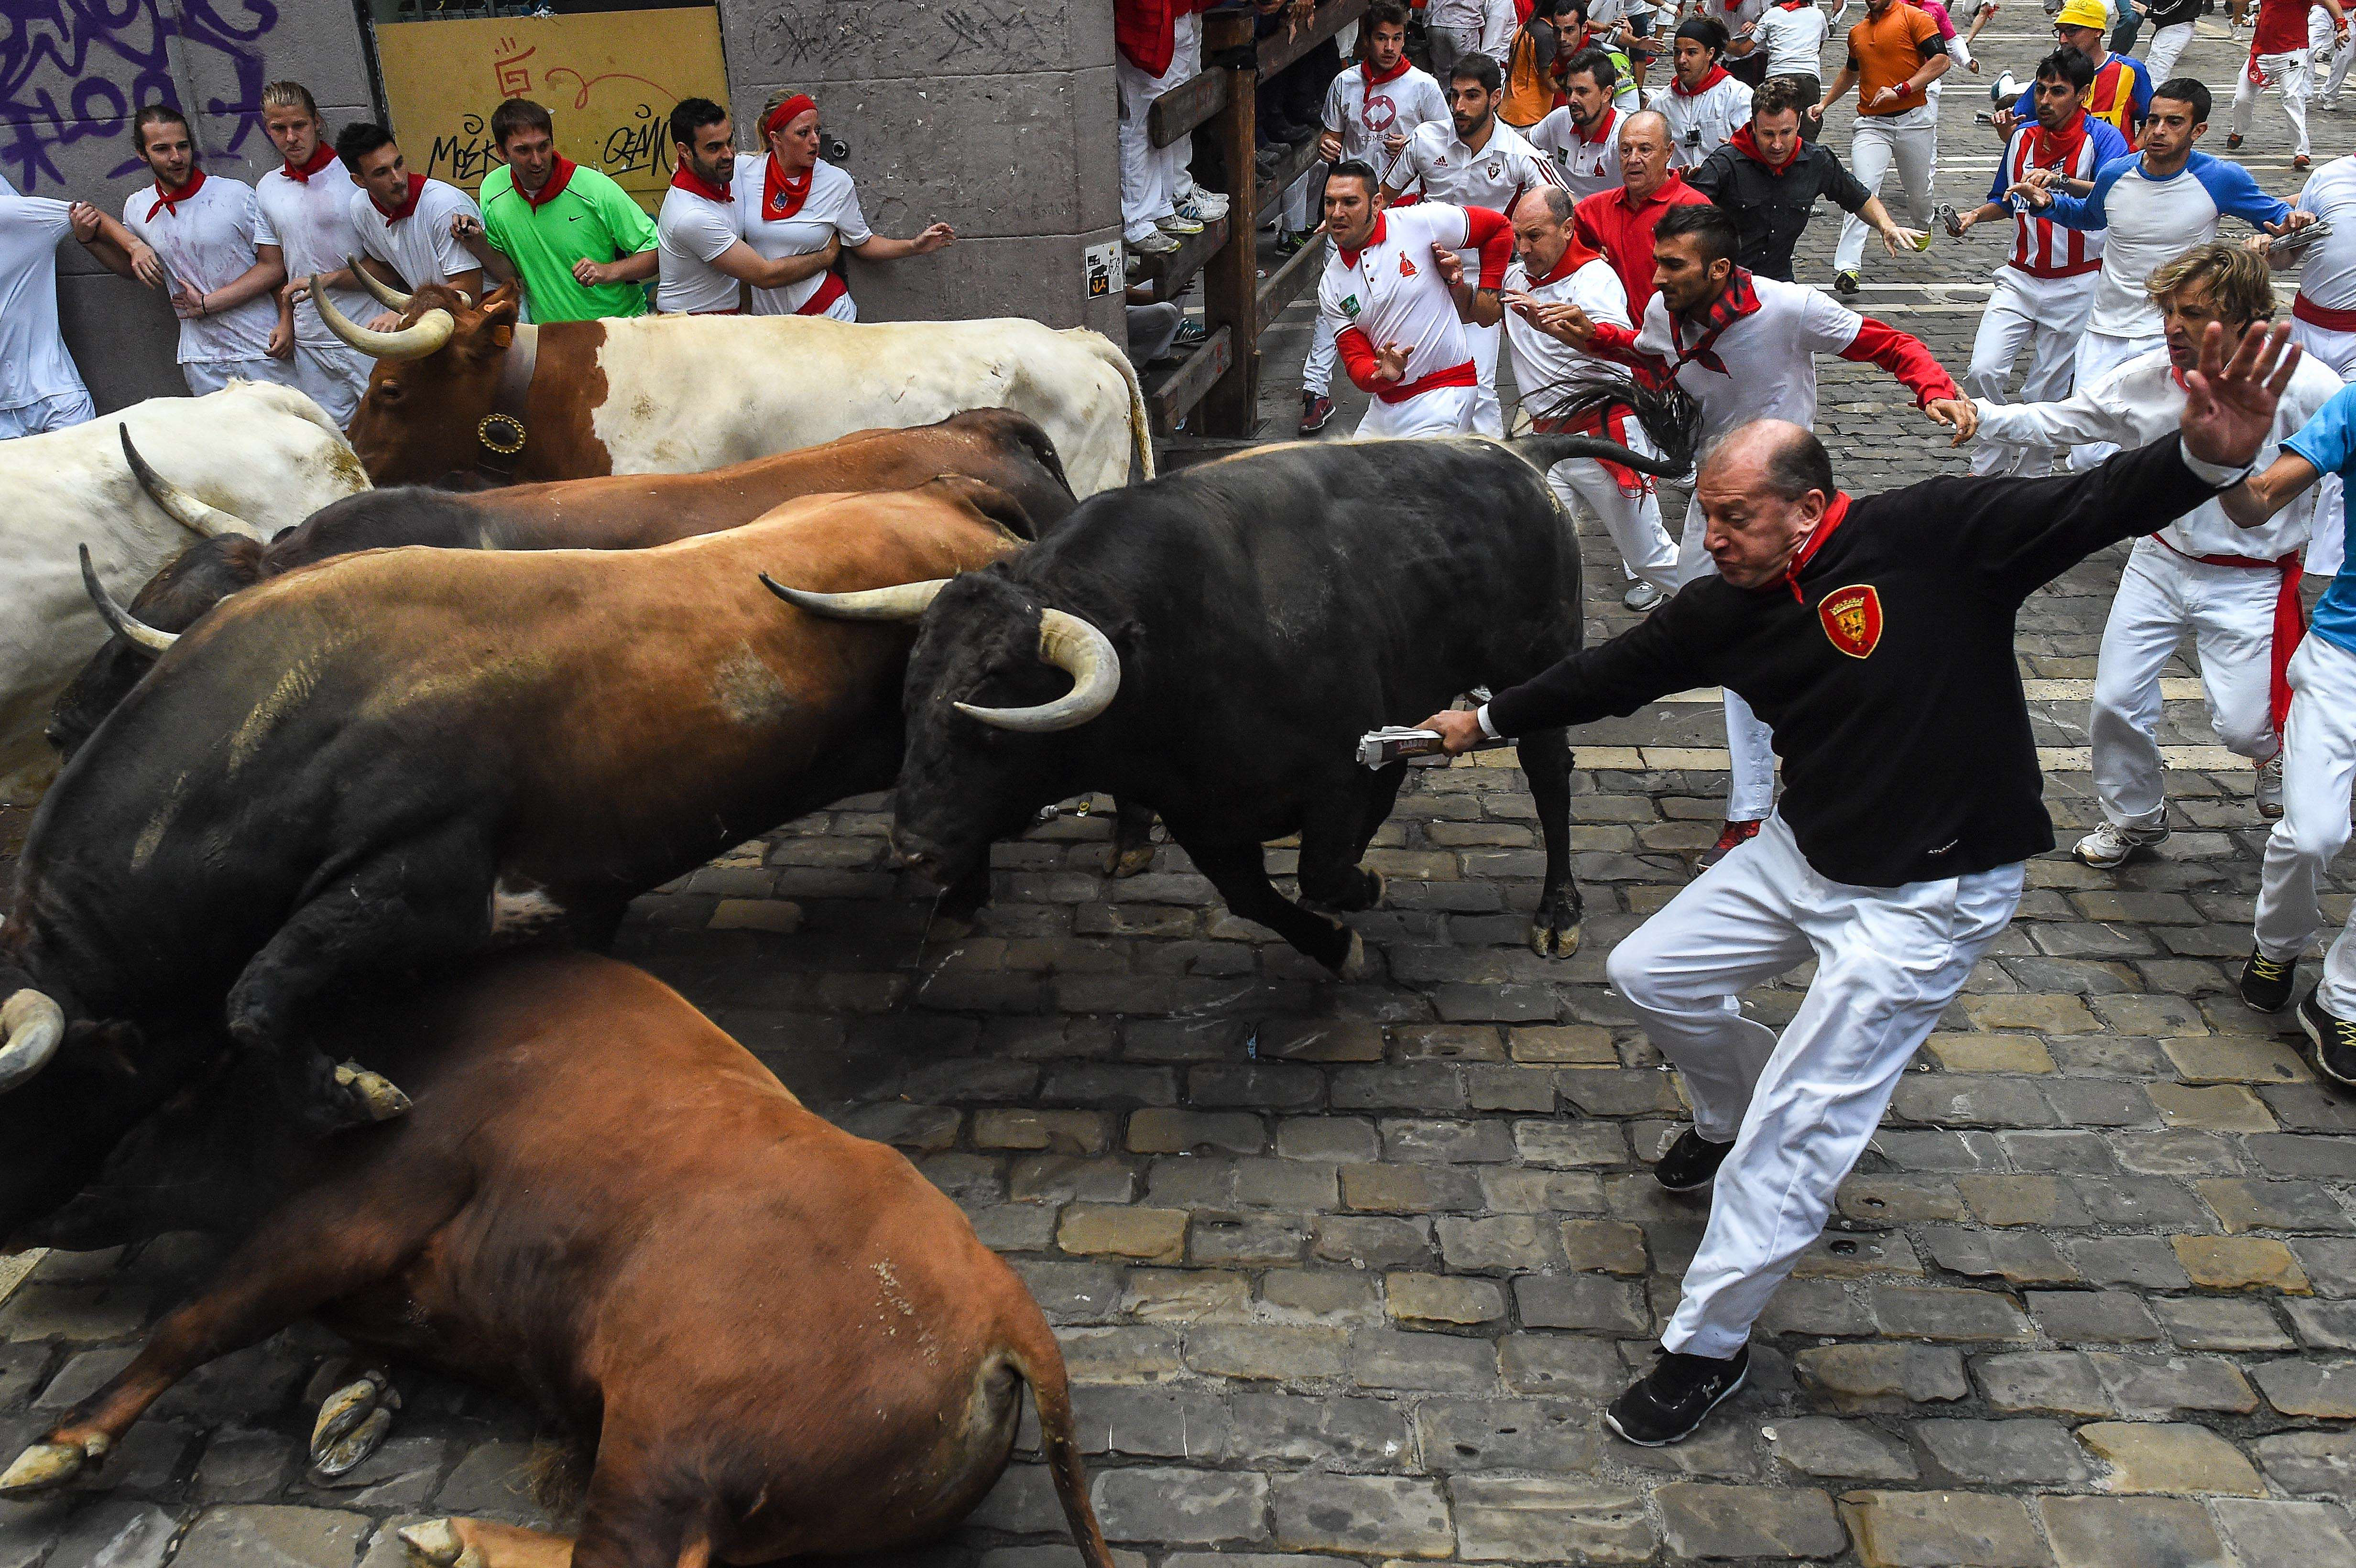 GettyImages 479854010 Video Shows Brutal Reality Of Bull Running, As Spain Sees Third Goring Death